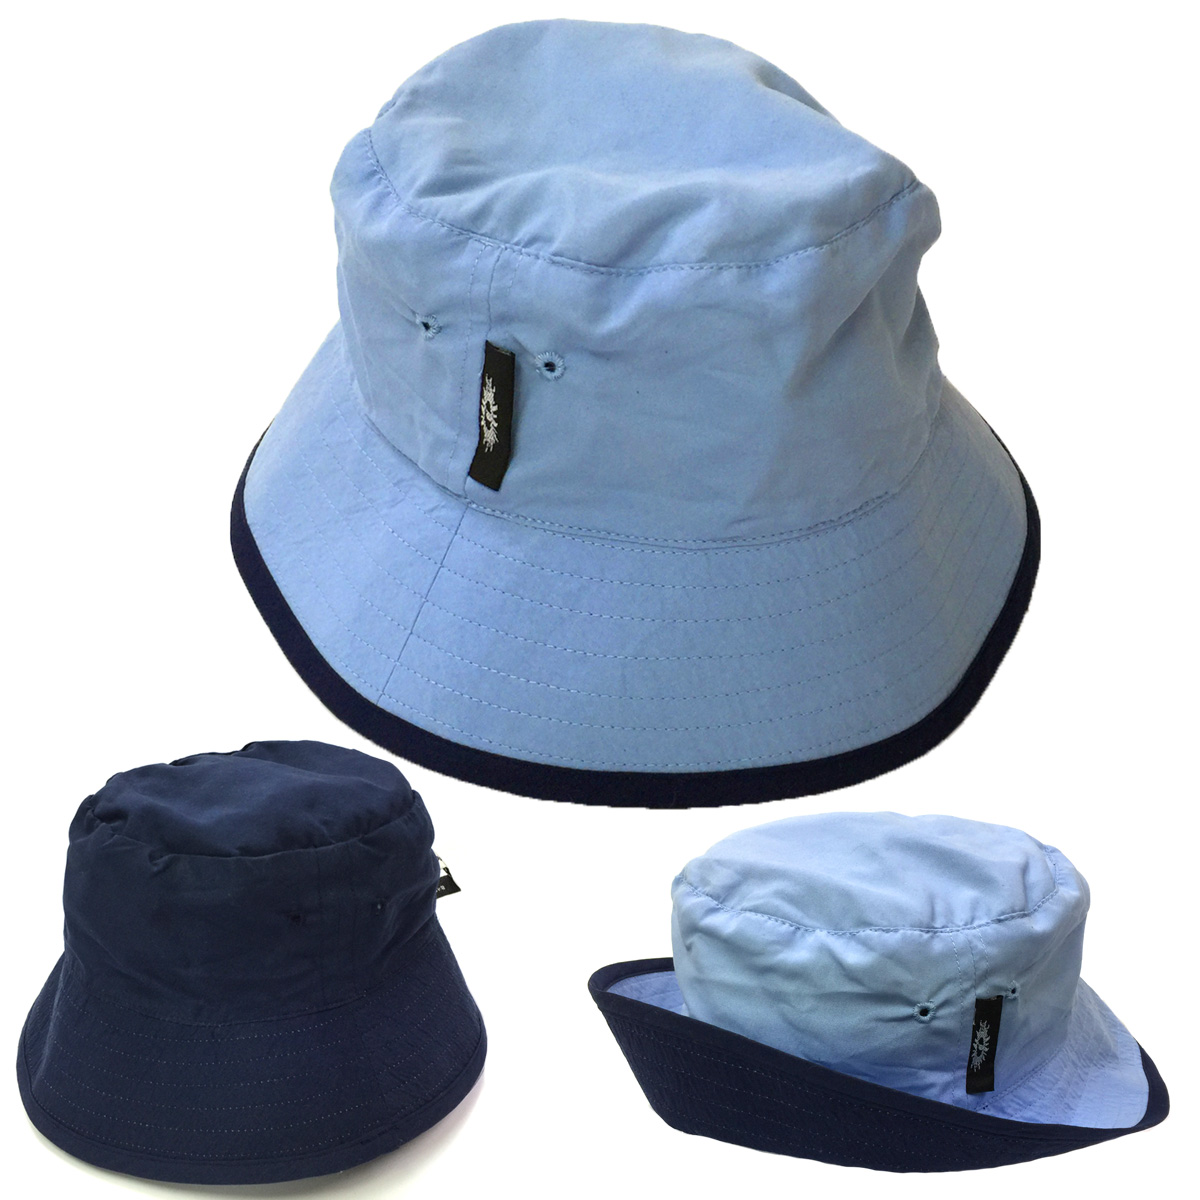 5b771455 Sun hats - Children's hats - Adults Unisex Woven Reversable Hat UPF50+  EXCELLENT PROTECTION which blocks >97.5% of the sun's UV radiations giving  excellent ...